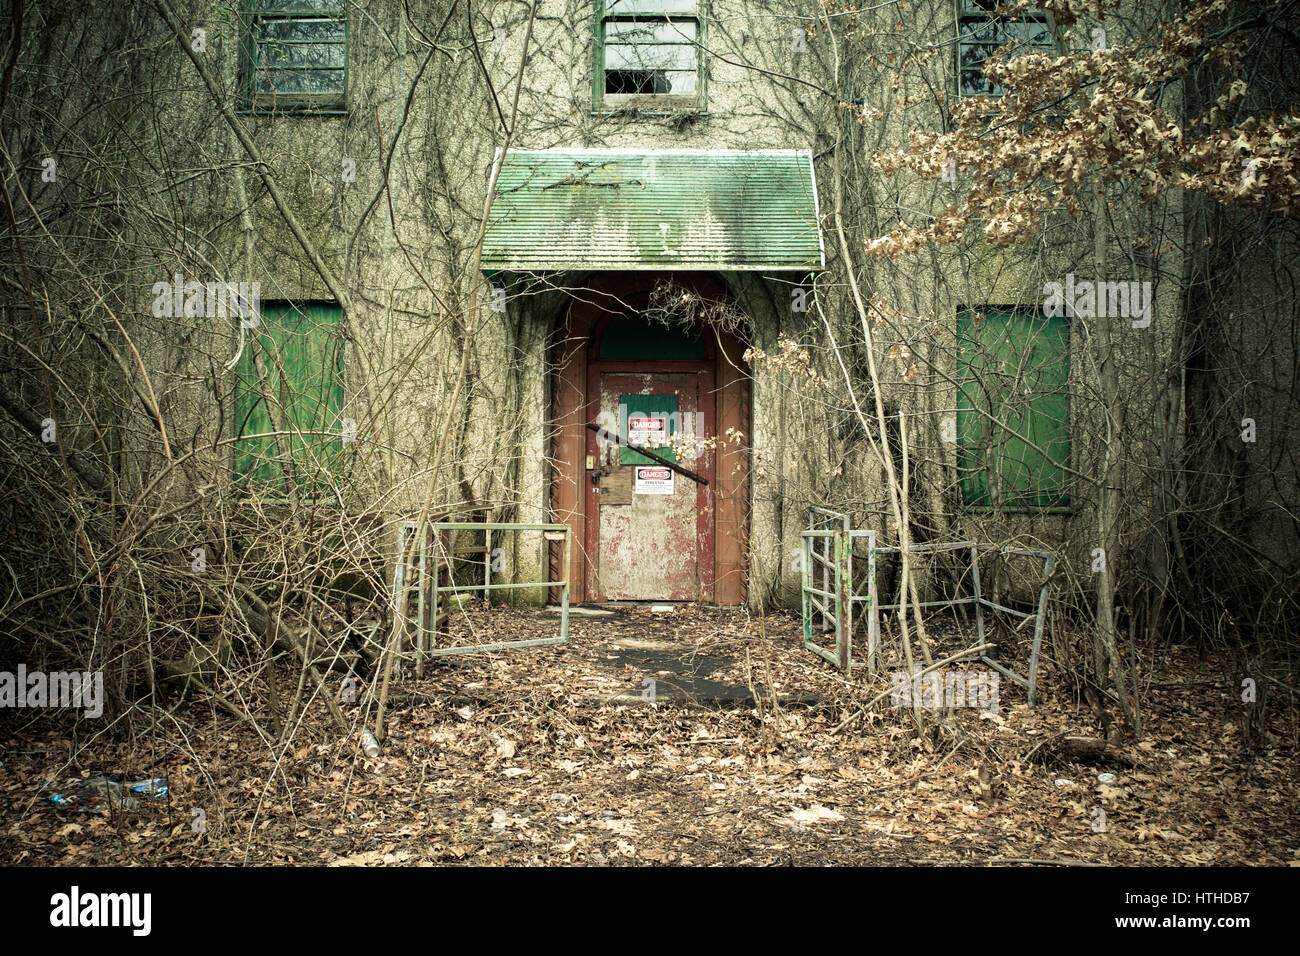 View of exterior of abandoned psychiatric hospital with asbestos warning on door - Stock Image